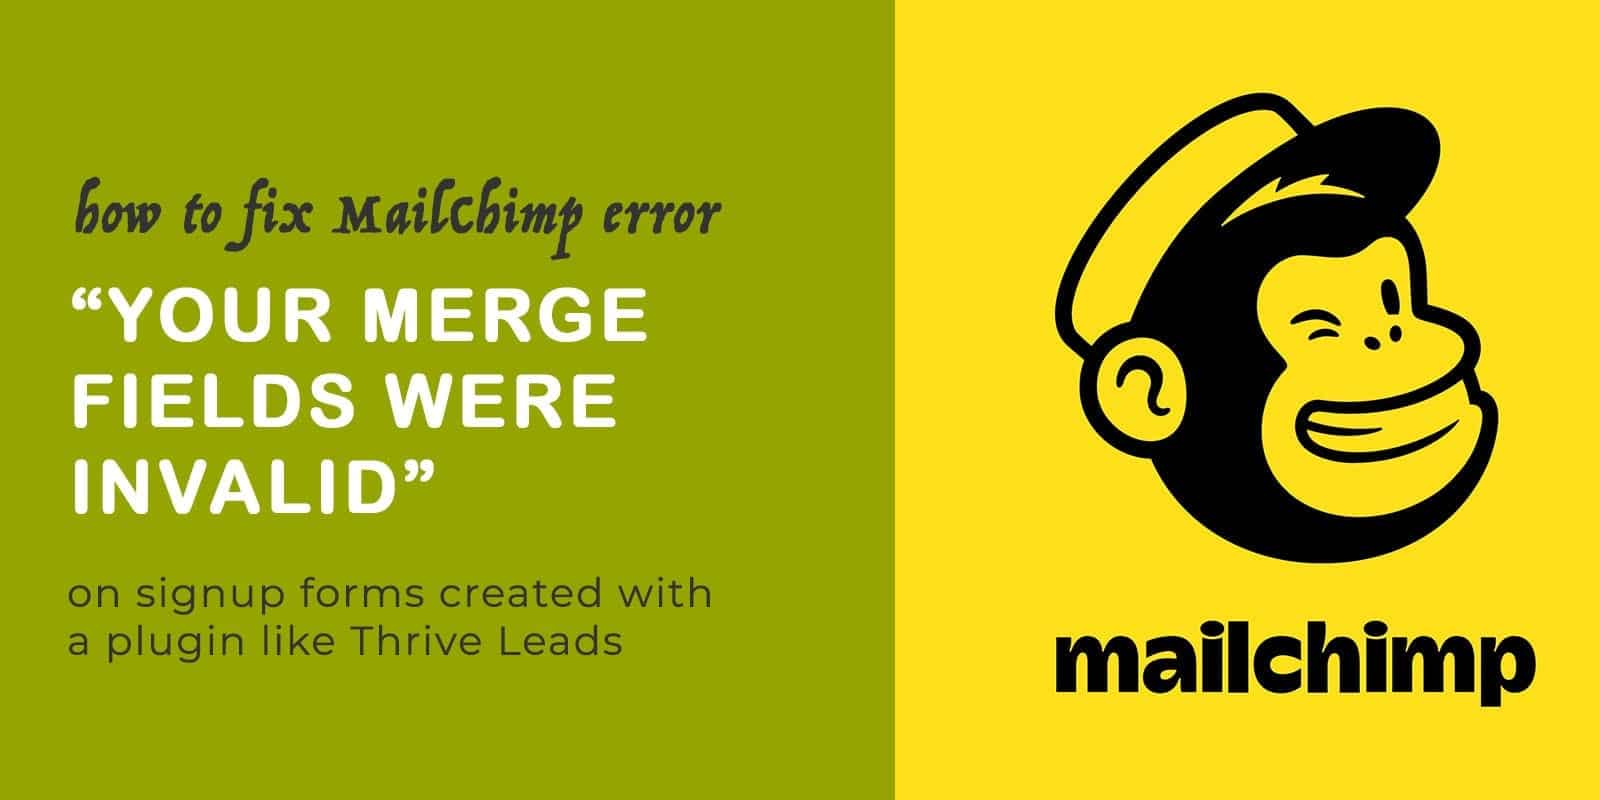 mailchimp logo with your merge fields were invalid text